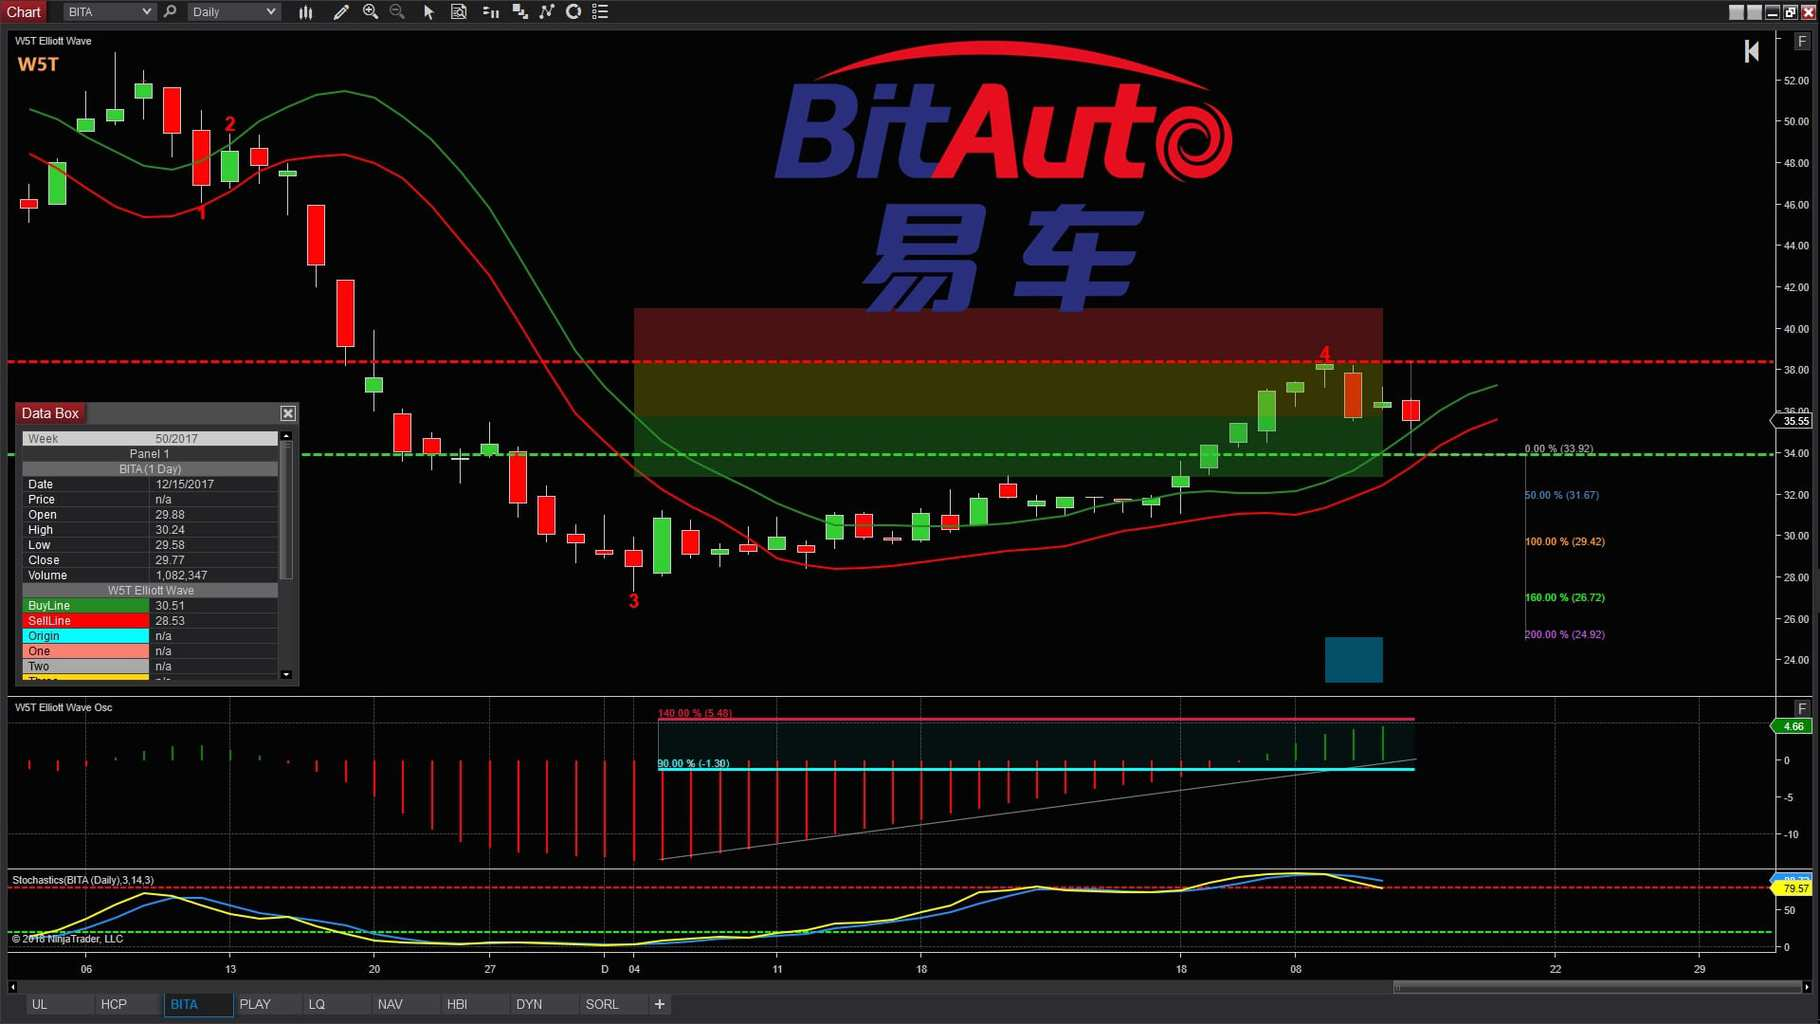 image of BITS stocks trade idea trading chart